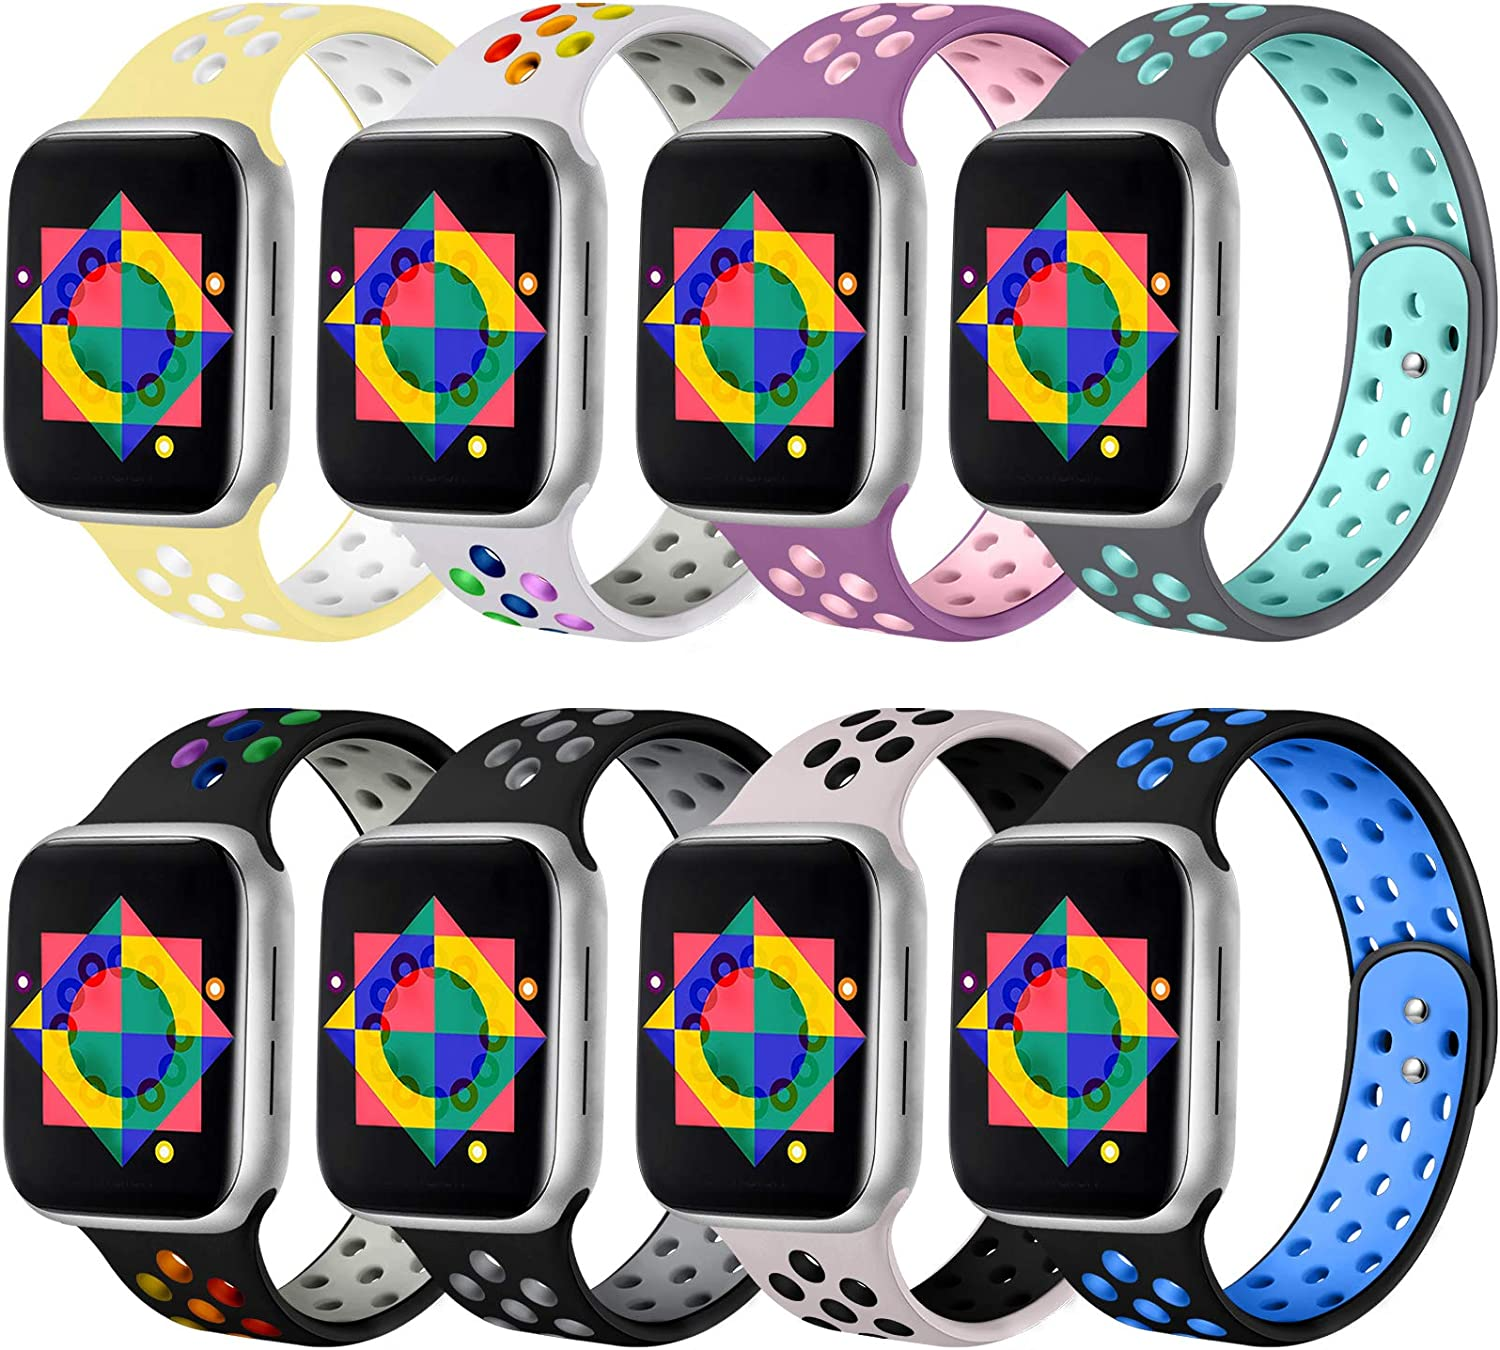 ilopee Rainbow Sport Bands Compatible with Apple Watch 5 40mm Band Series 6 SE 4 - Classic Breathable Holes Silicone Wristband for iWatch Bands 38mm Women Men Series 3 2 1, Pack of 8, S/M